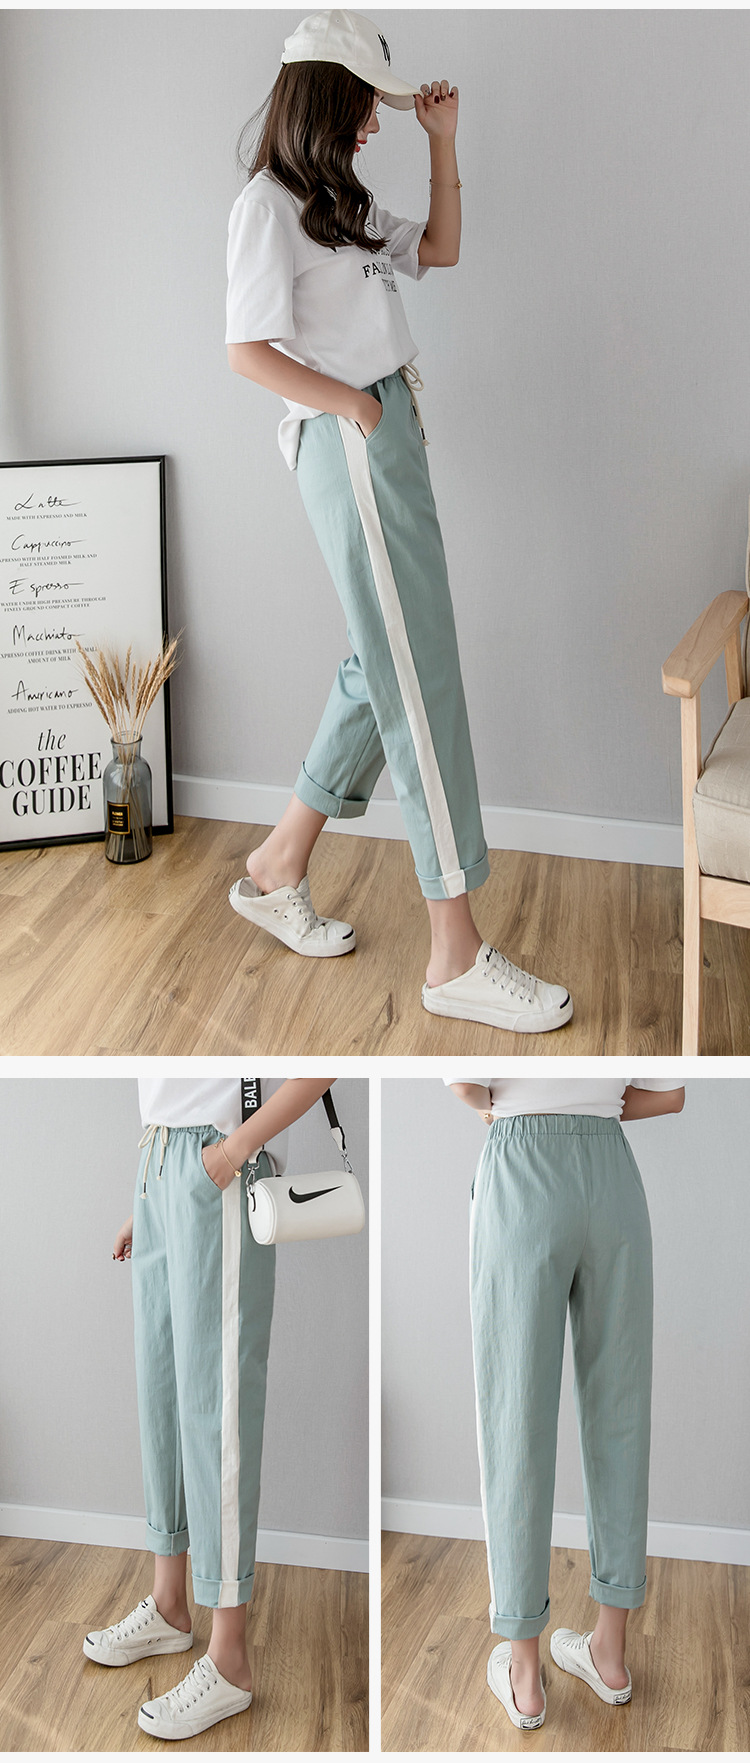 Cotton Linen Ankle Length Pants Women's Spring Summer Casual Trousers Pencil Casual Pants Striped Women's Trousers Green Pink 7